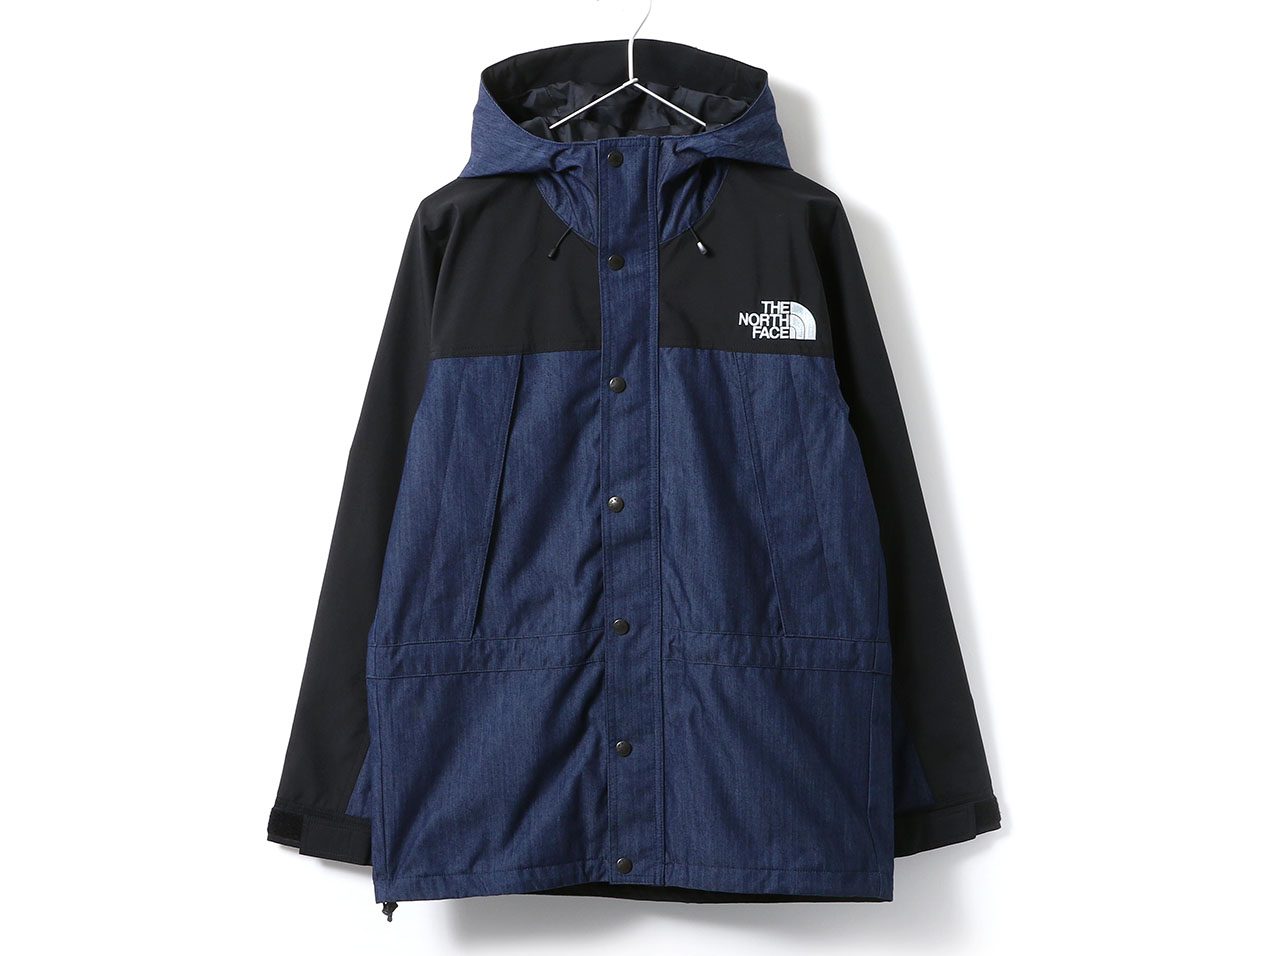 THE NORTH FACE Mountain Light Denim Jacket - NP12032